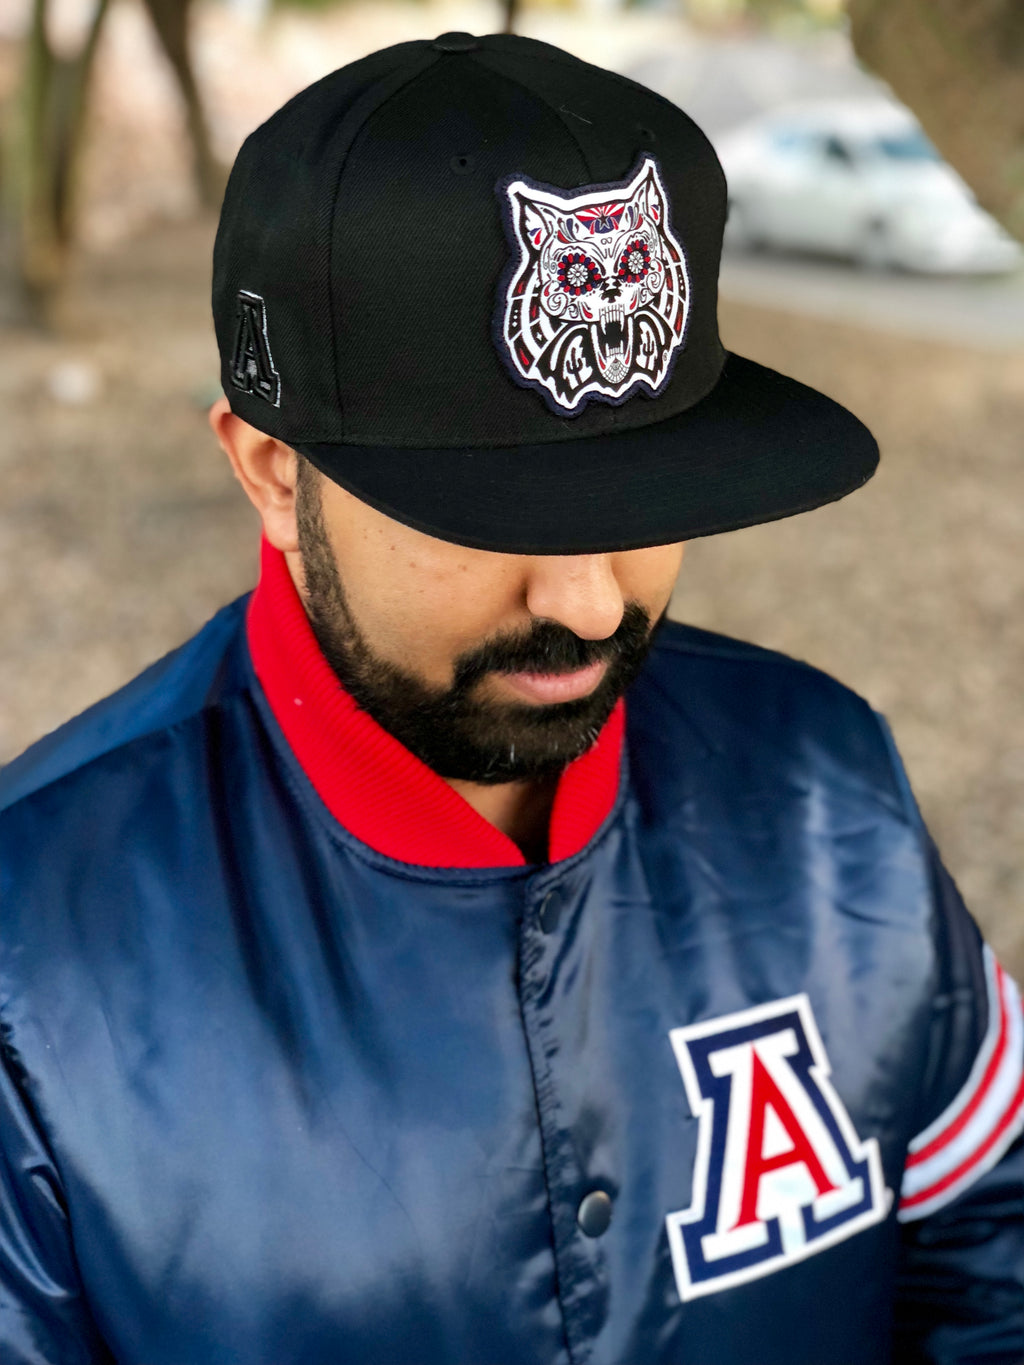 Arizona Wildcats Dia De Los Muertos Flat Hat Black